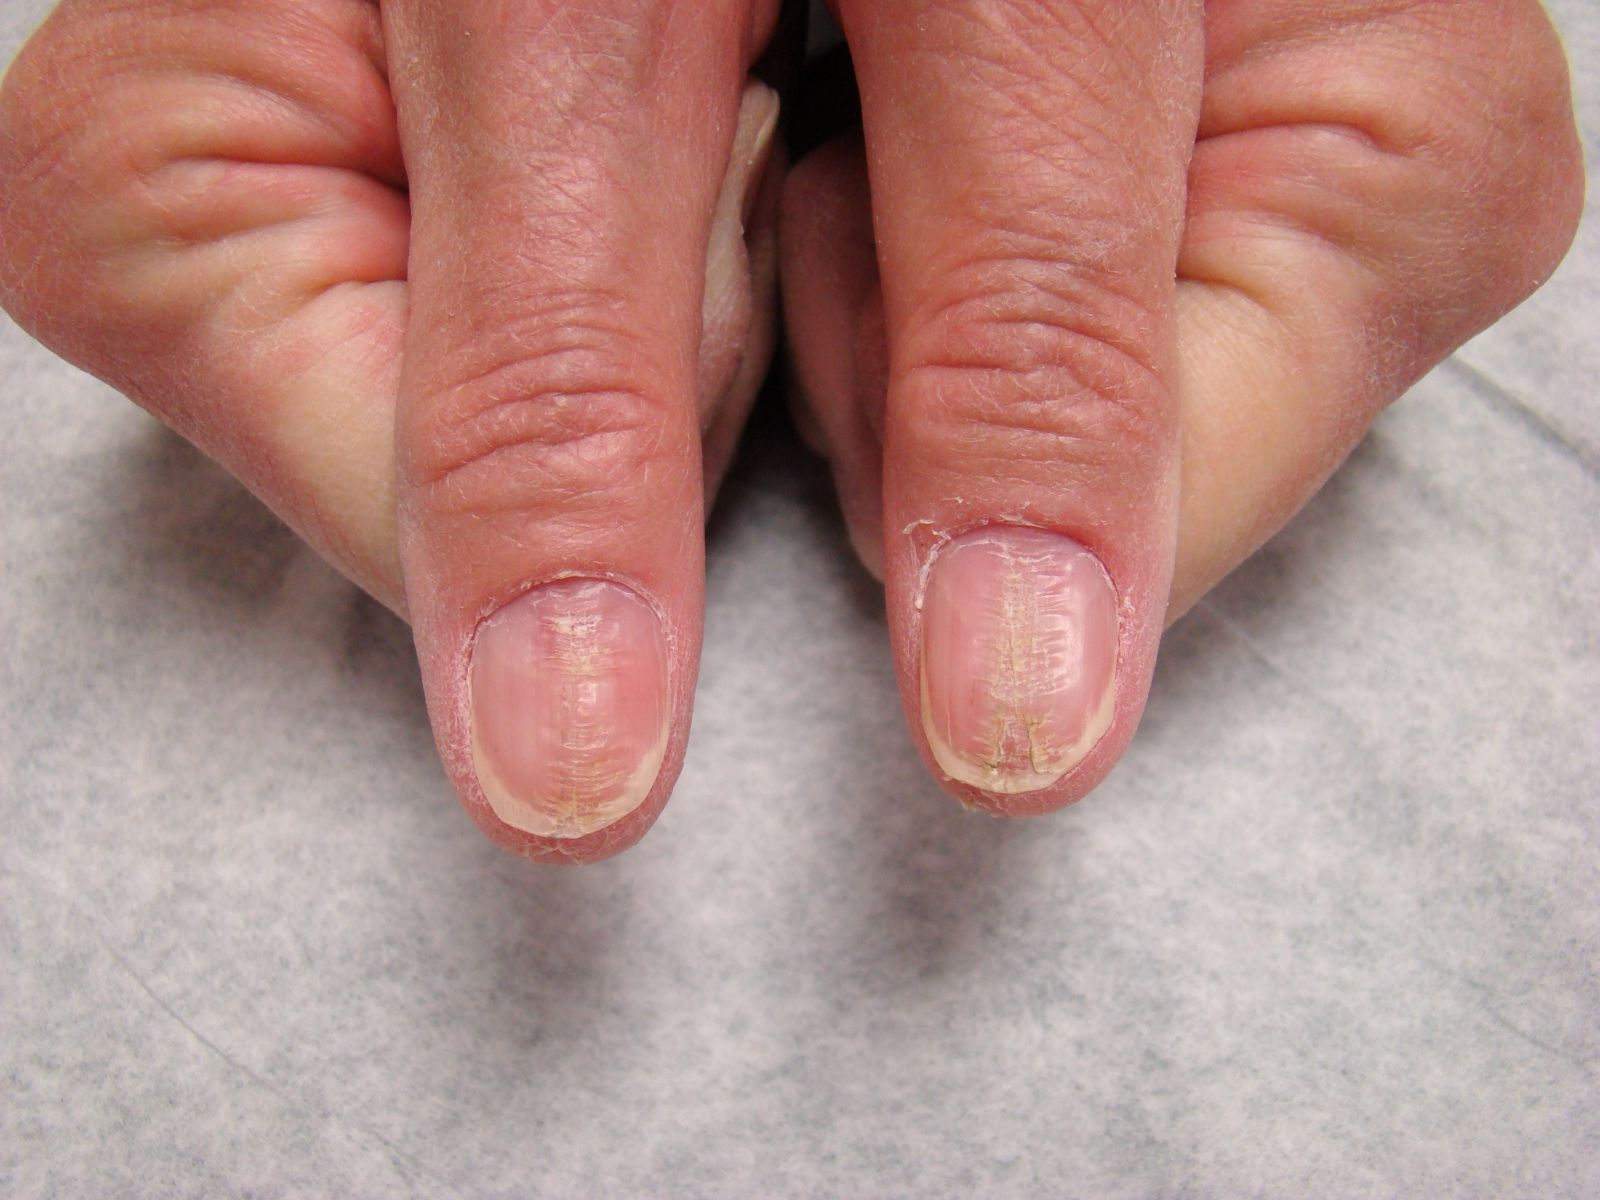 Thumb Nail Deformities in a Mature Woman